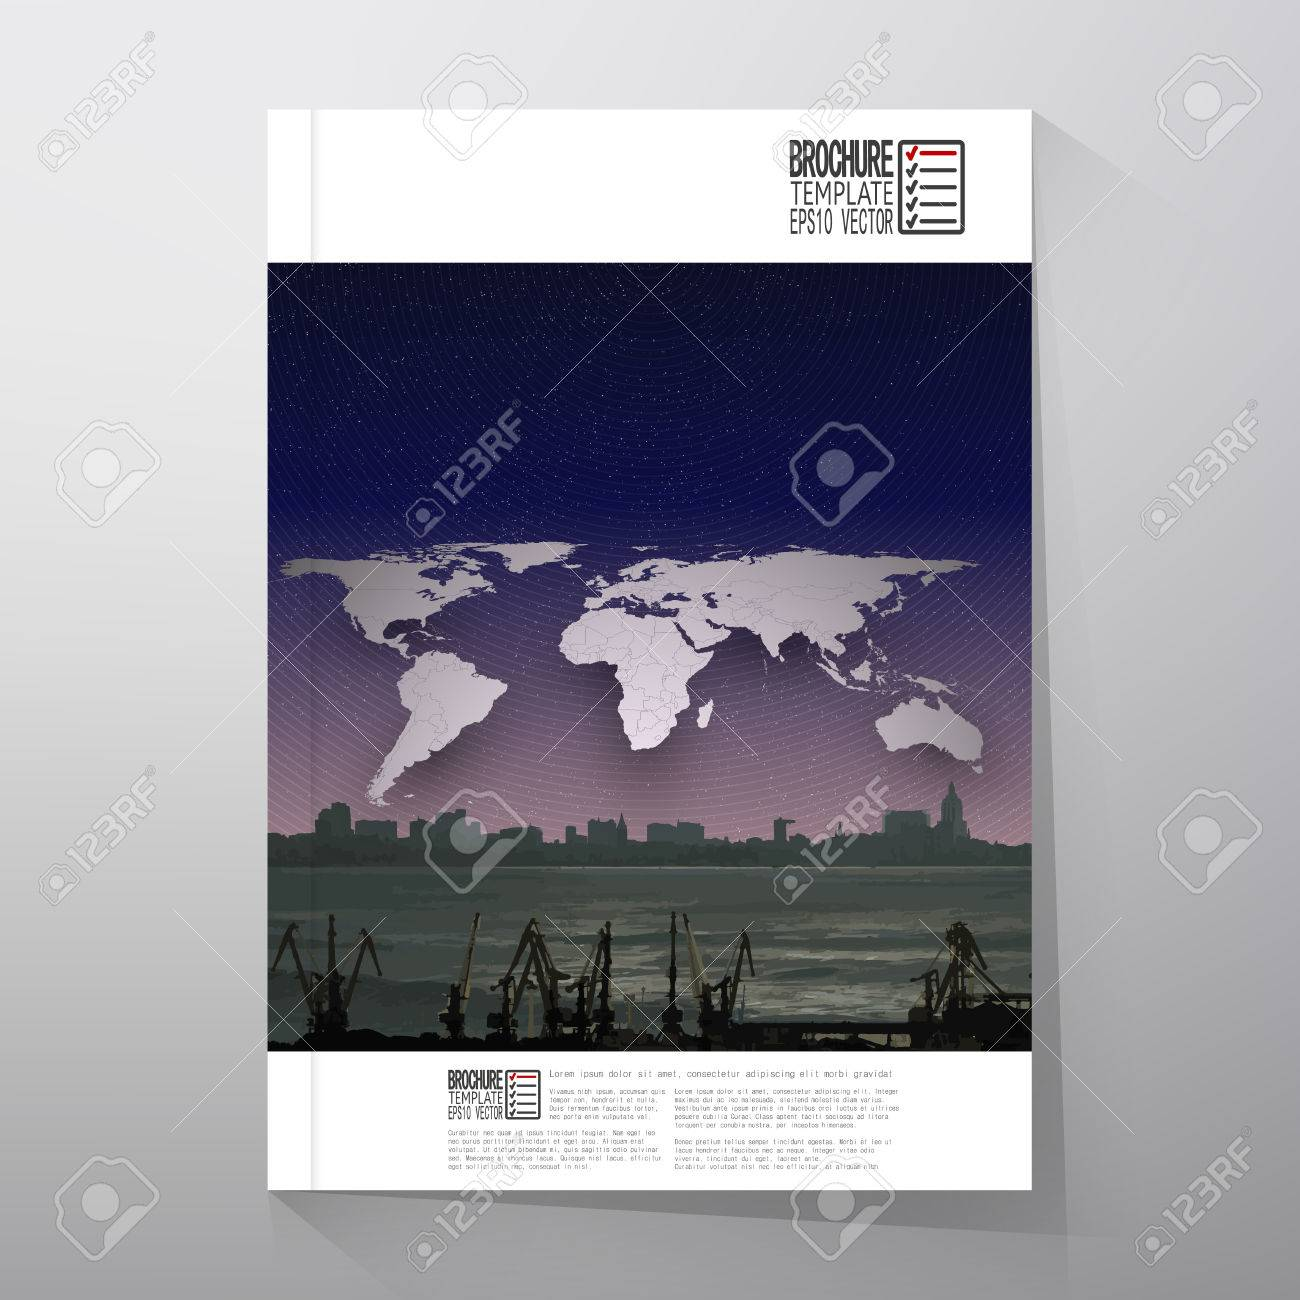 Shipyard and city landscape world map night design vector brochure shipyard and city landscape world map night design vector brochure flyer or report gumiabroncs Gallery